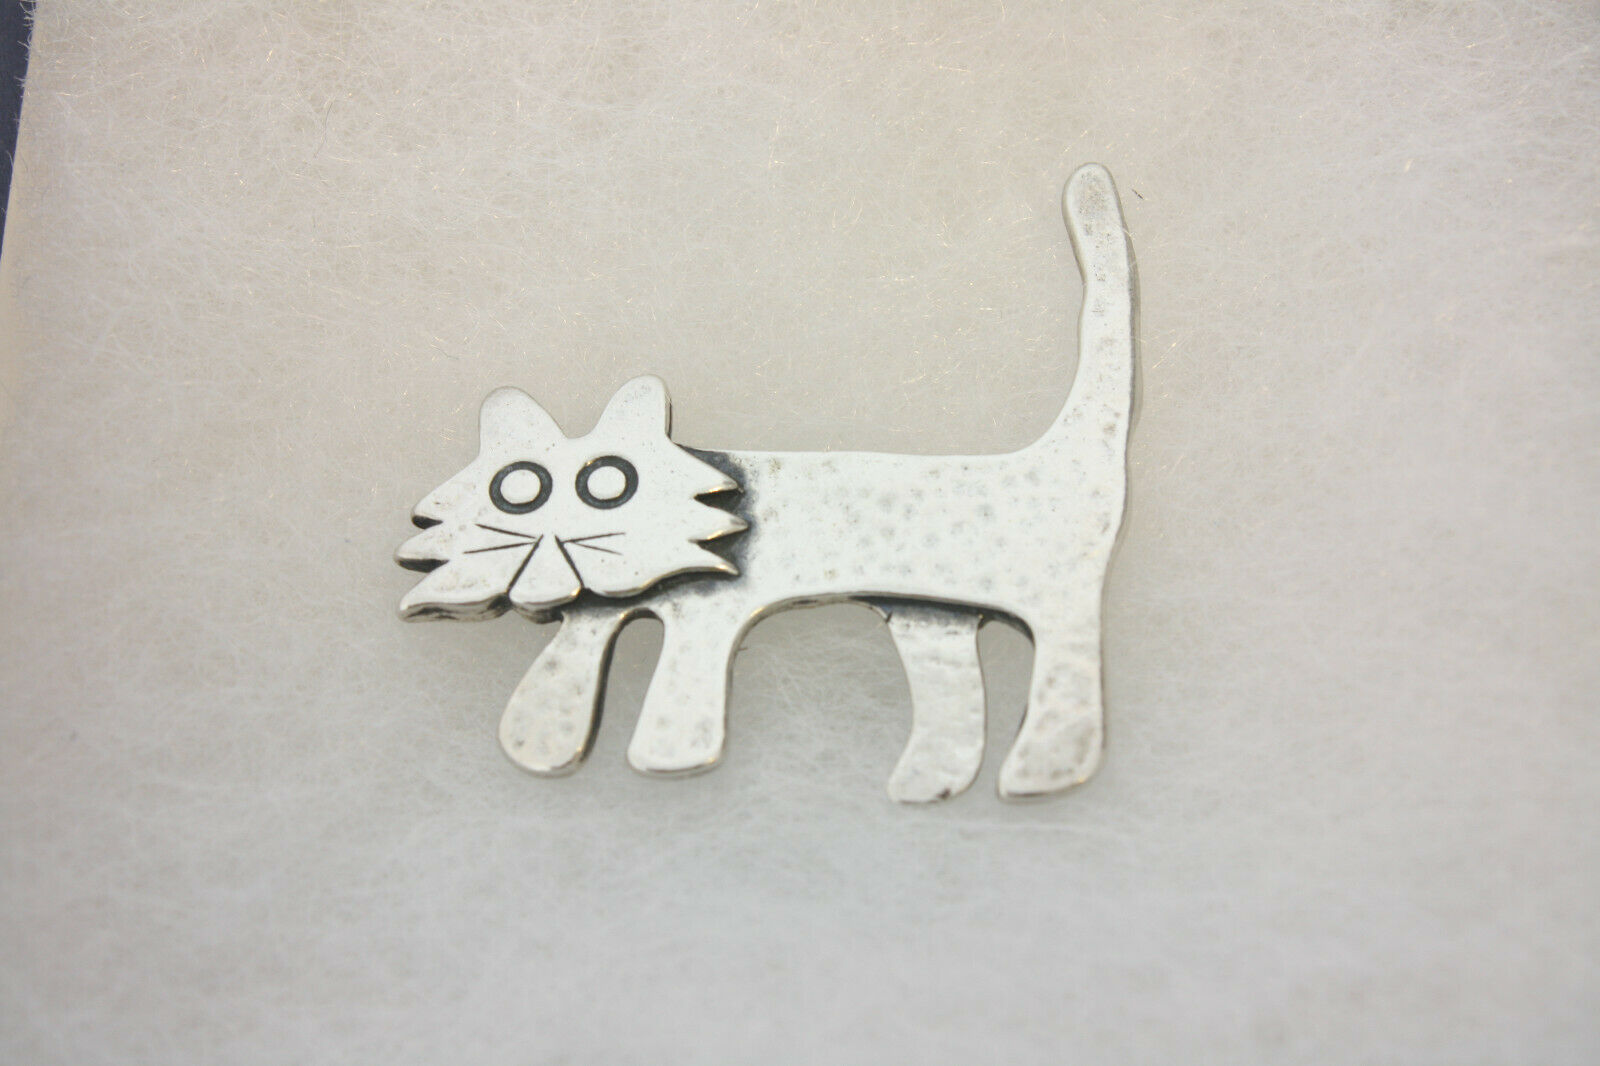 Cat brooch Cat pin MB Designs Bonnie Moreno Whiskers 1989 Tabby Cat Pin MB Design Handcrafted Art #115 Signed